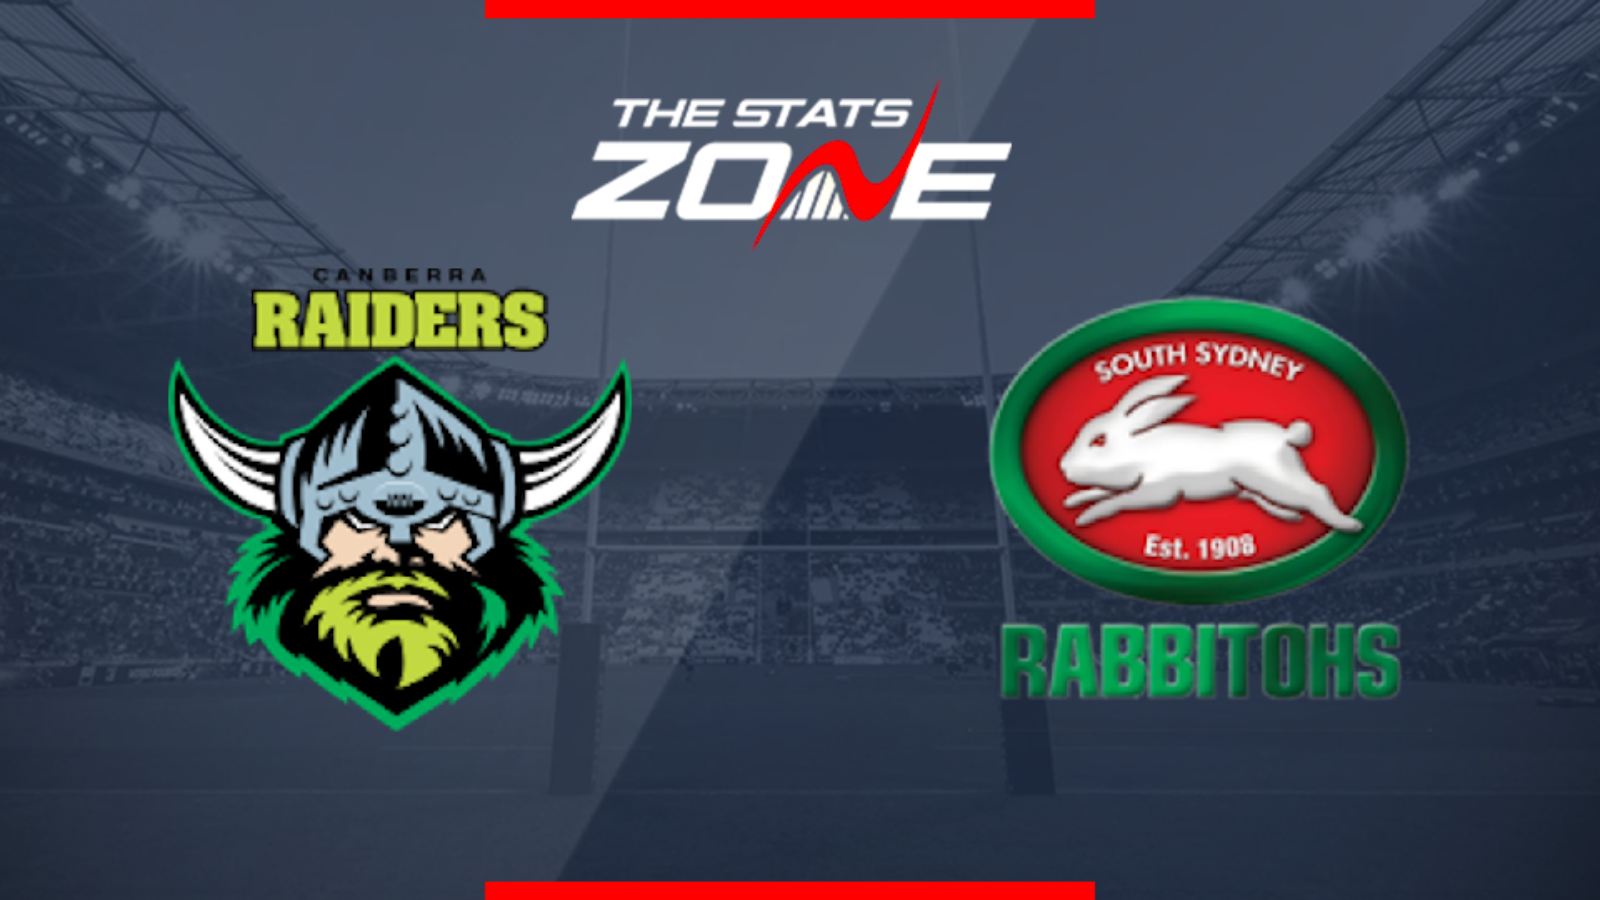 2019 Nrl Canberra Raiders Vs South Sydney Rabbitohs Preview Prediction The Stats Zone